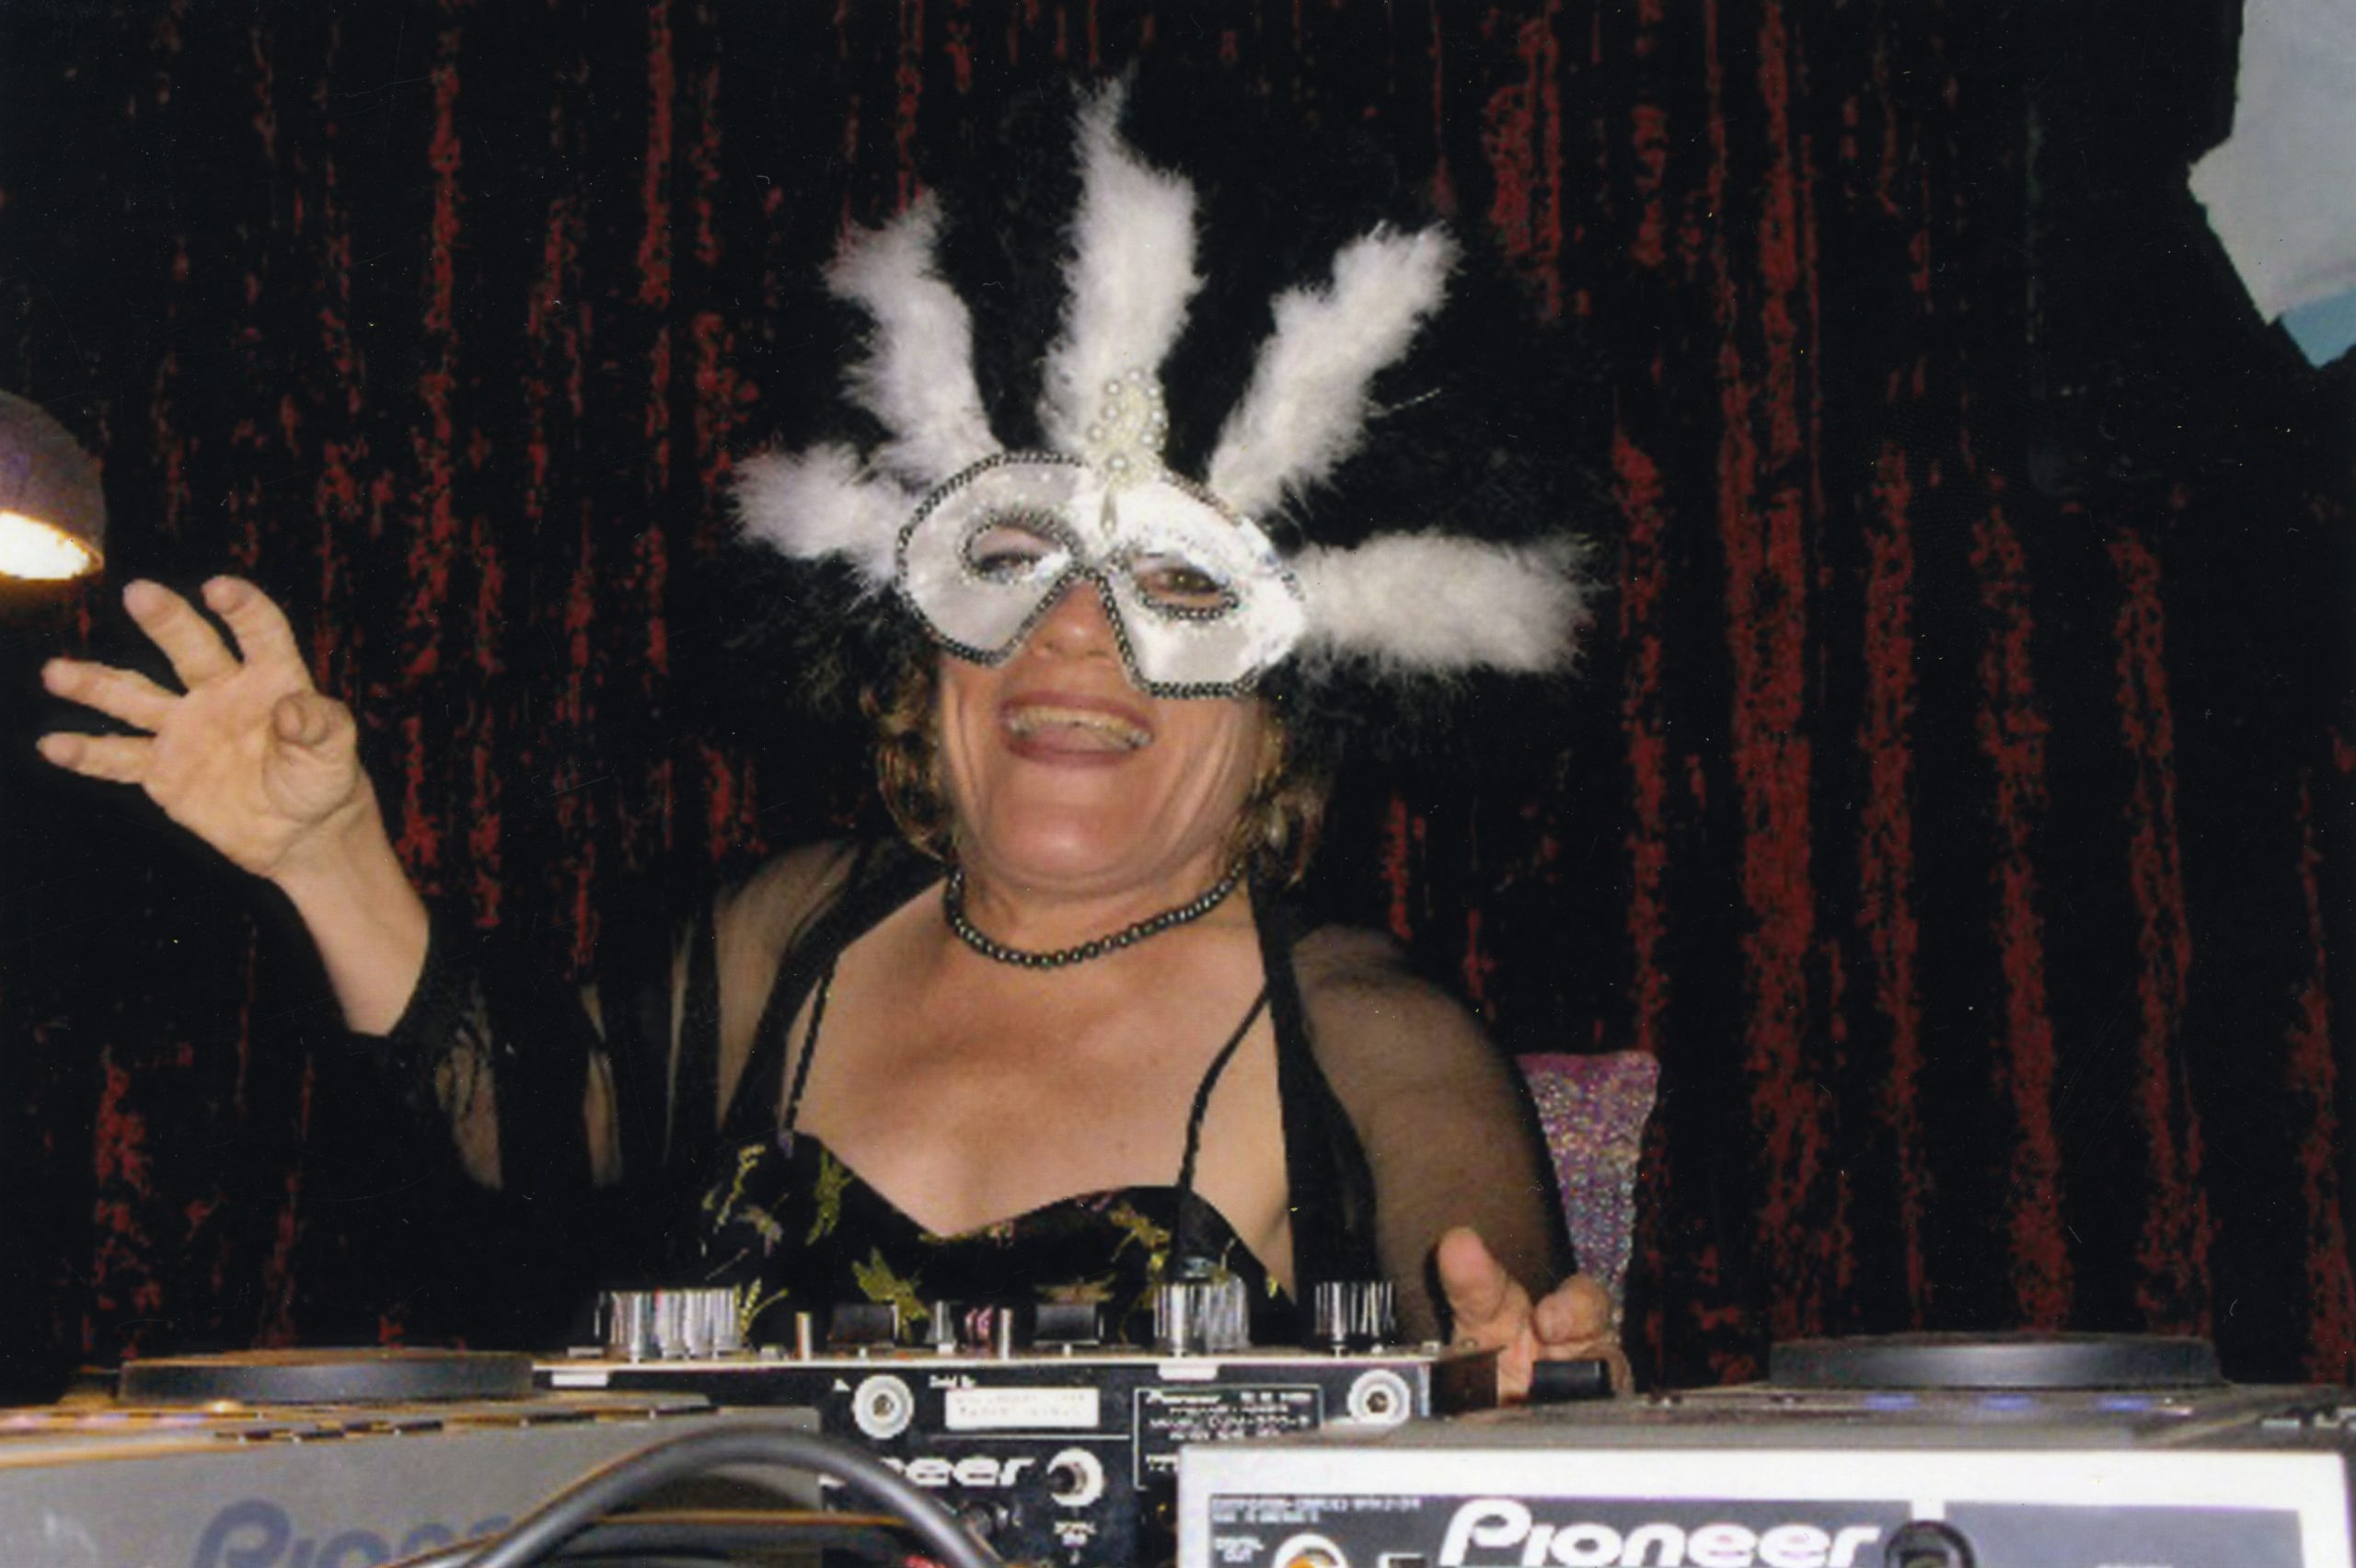 A small-statured woman wearing a black dress, see-through cardigan and white dress-up mask with feathers is smiling and laughing. She is sitting behind some DJ decks she is using at a masked-ball event.